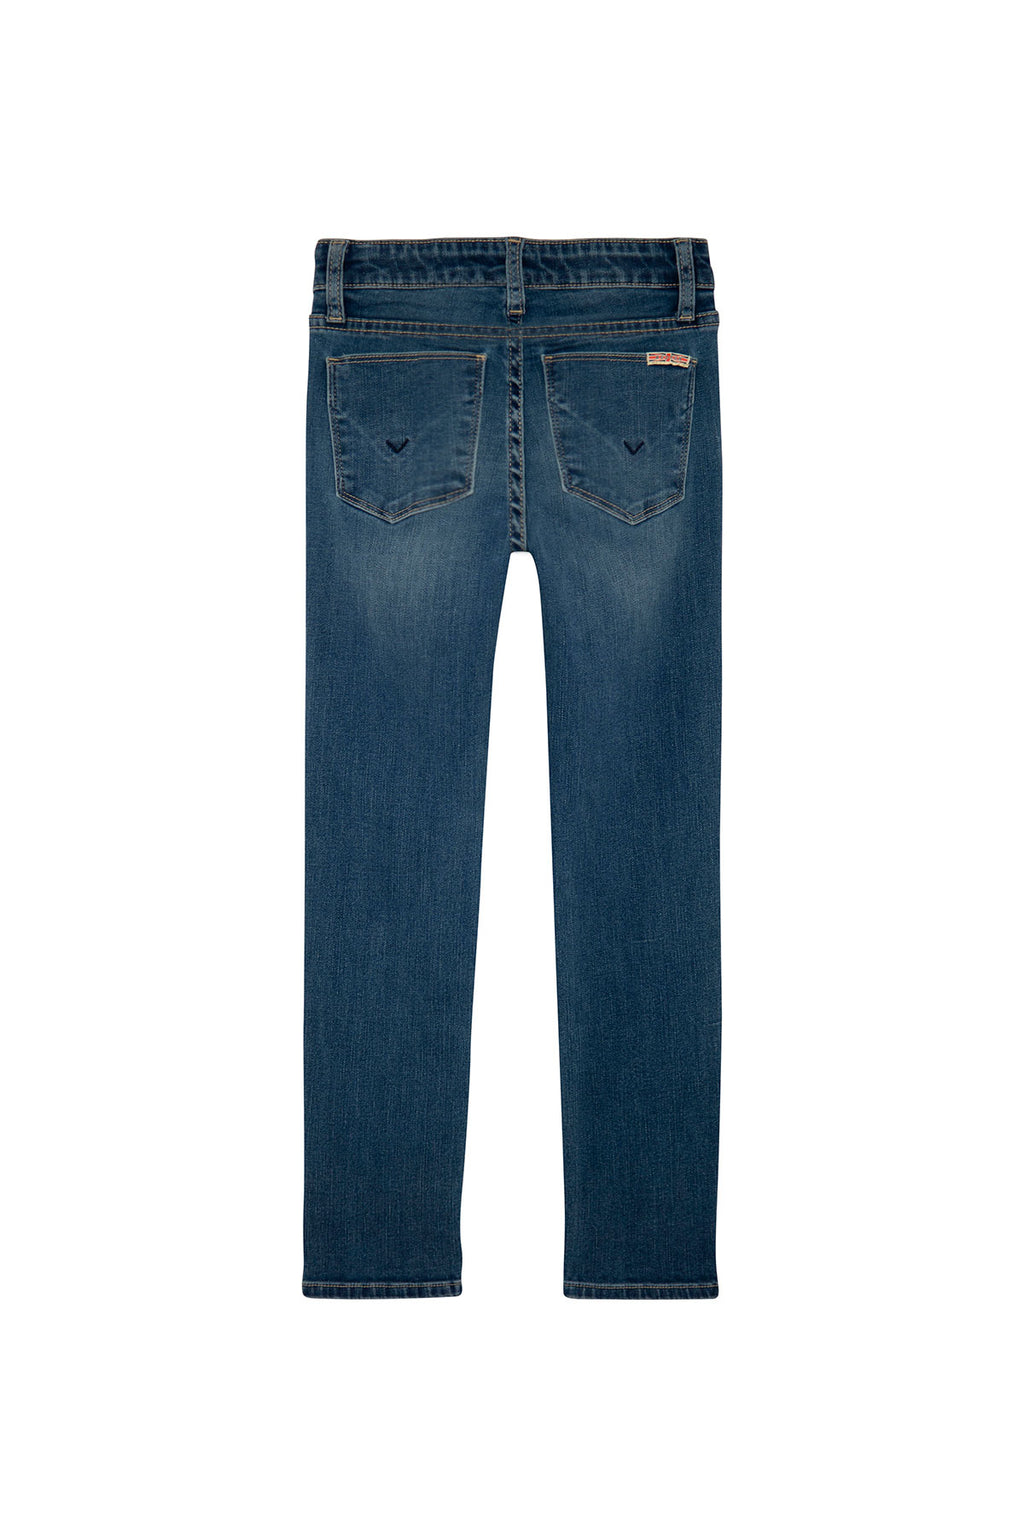 GIRLS ASAMI CROP JEAN, SIZES 7-16 - VINTAGE LOVE - Image 2